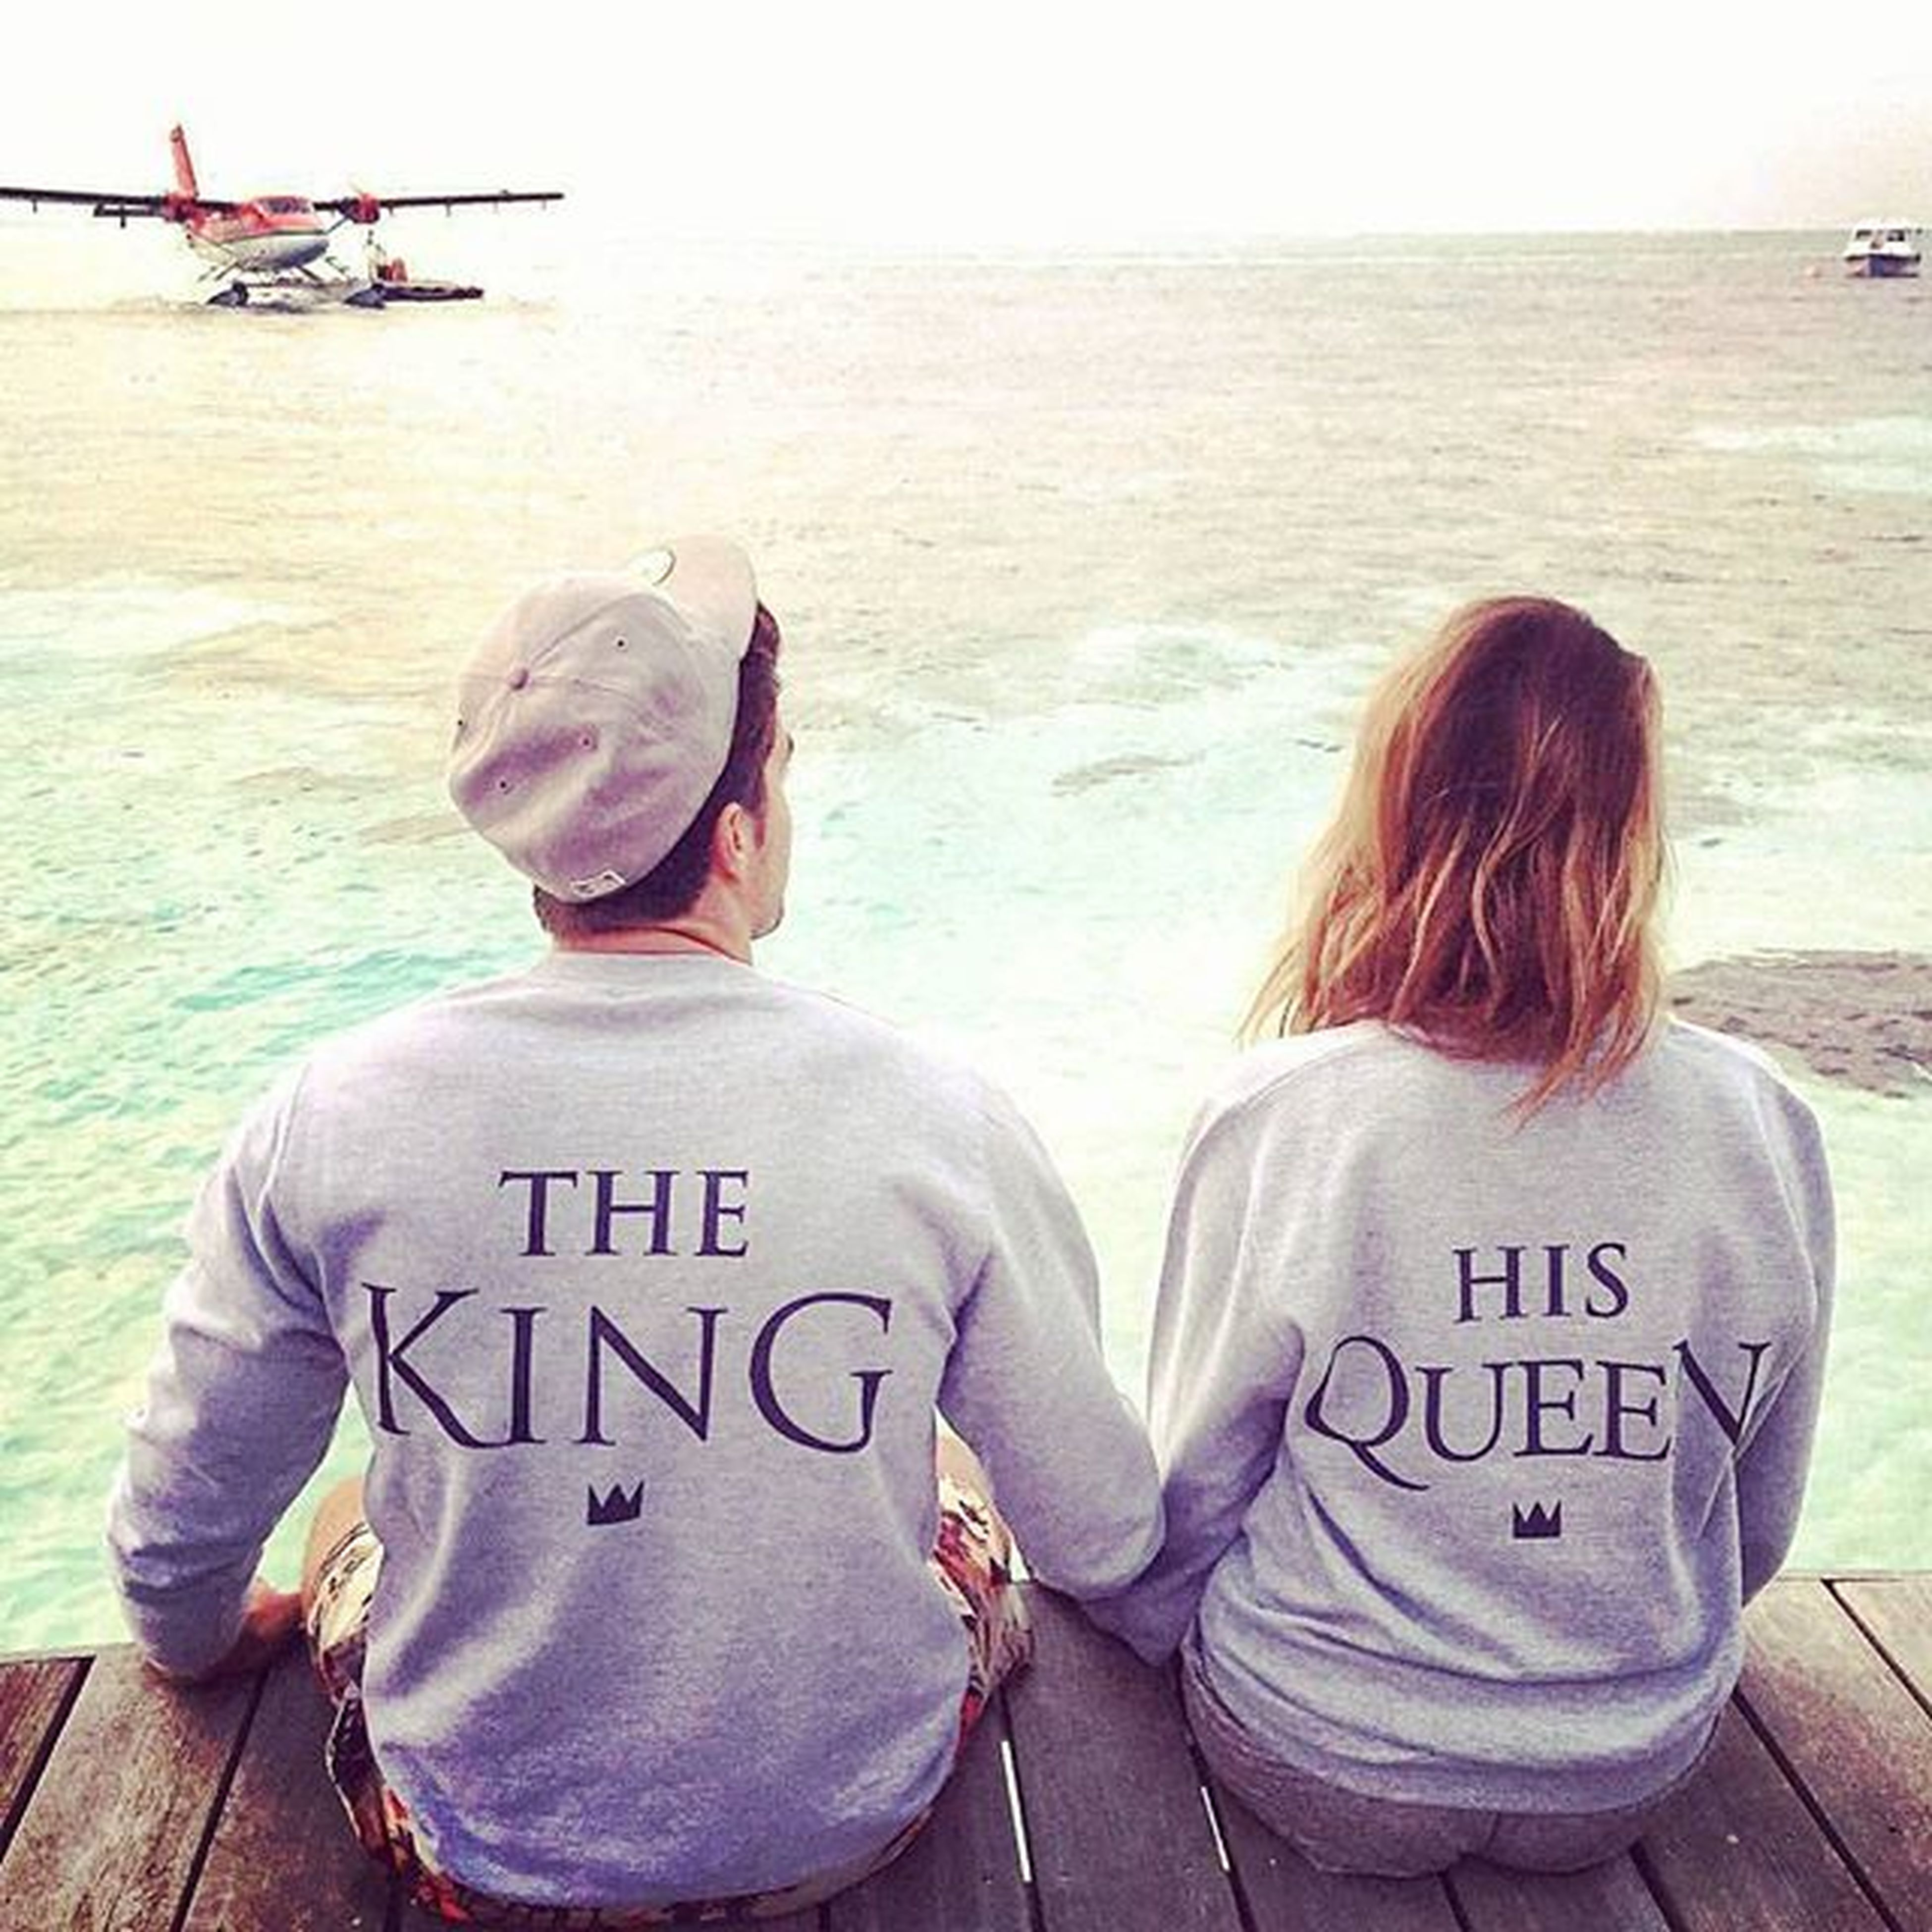 water, sea, lifestyles, leisure activity, text, rear view, communication, western script, casual clothing, beach, childhood, love, togetherness, shore, bonding, sitting, men